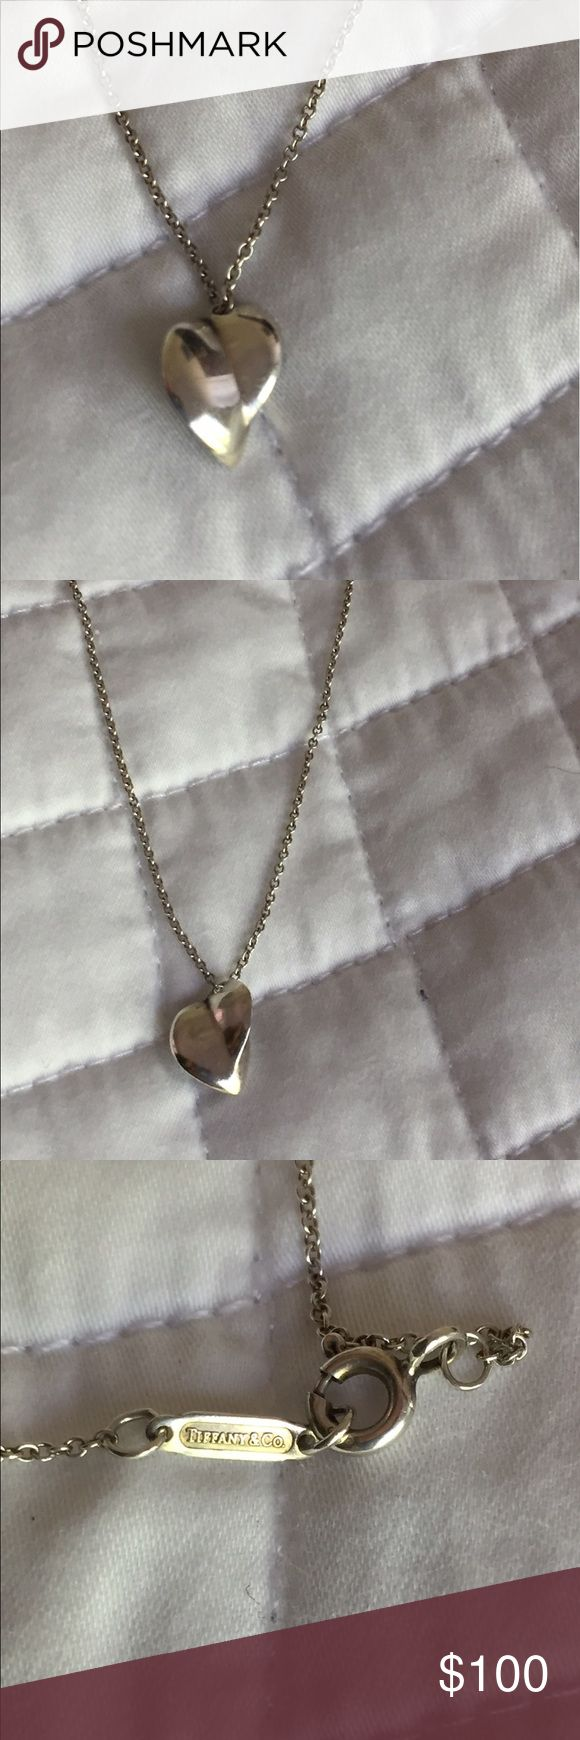 """Tiffany & Co. Heart Necklace Beautiful and classic silver Tiffany necklace. Heart shape floats on a thin 16"""" chain. Does not come with Tiffany box/bag. Tiffany & Co. Jewelry Necklaces"""